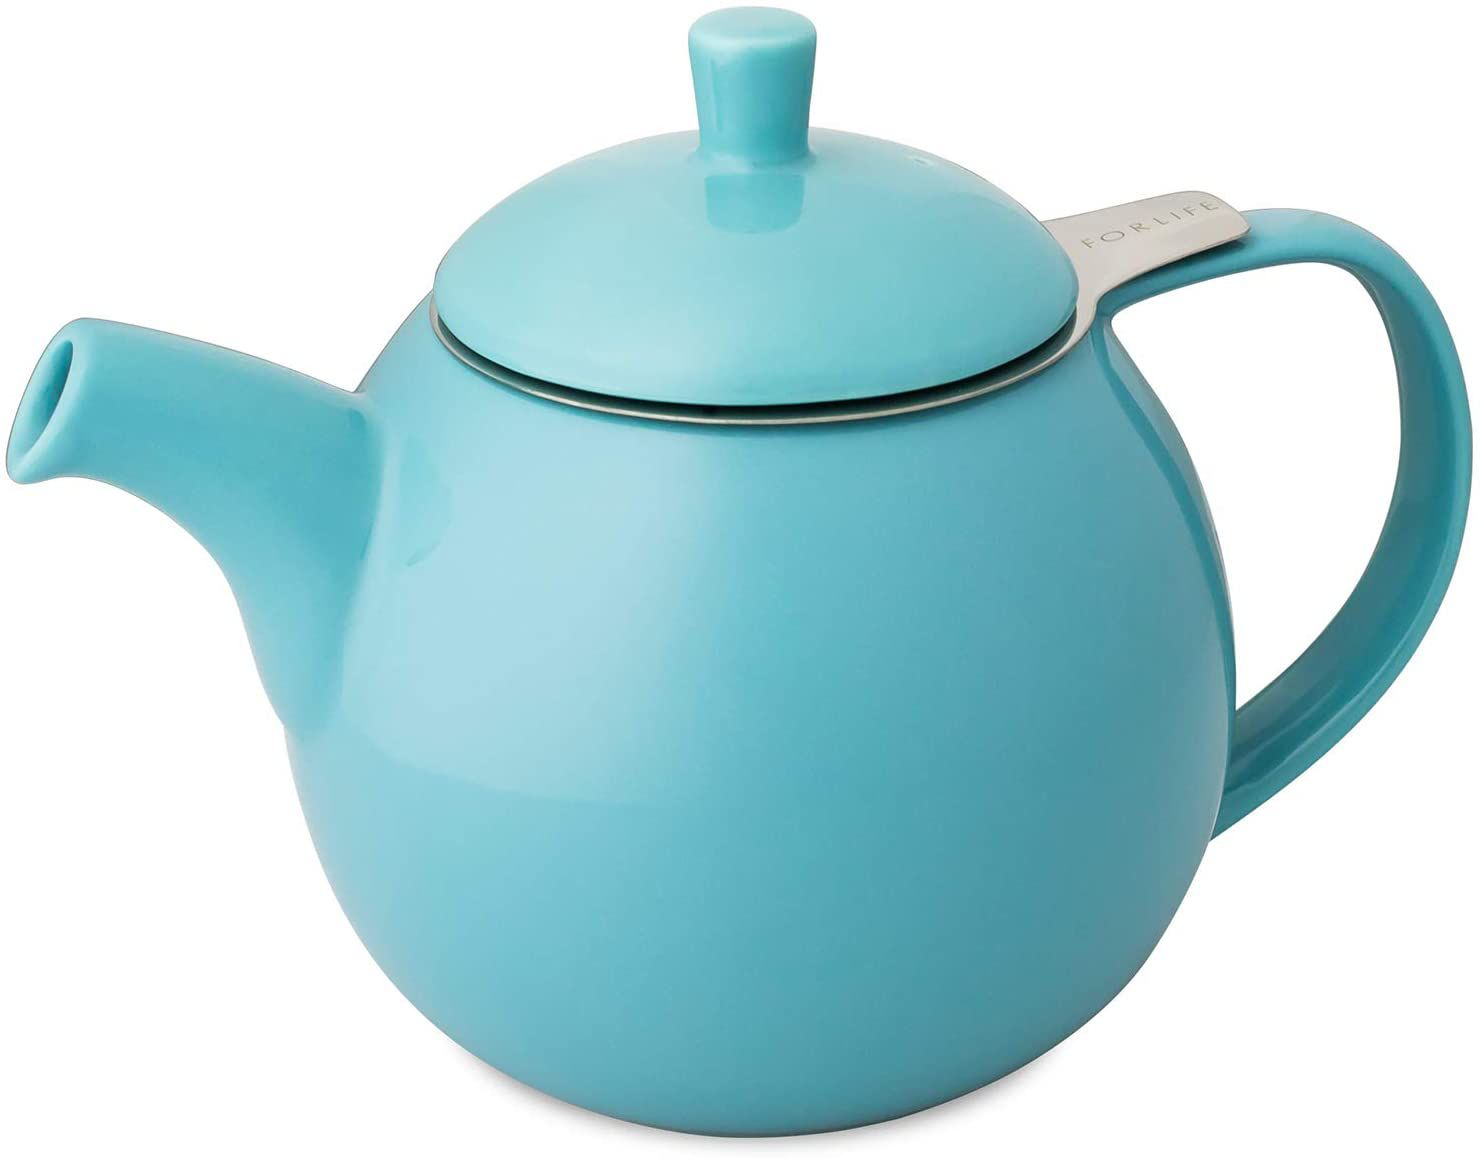 FORLIFE Curve Teapot with Infuser, 24-Ounce